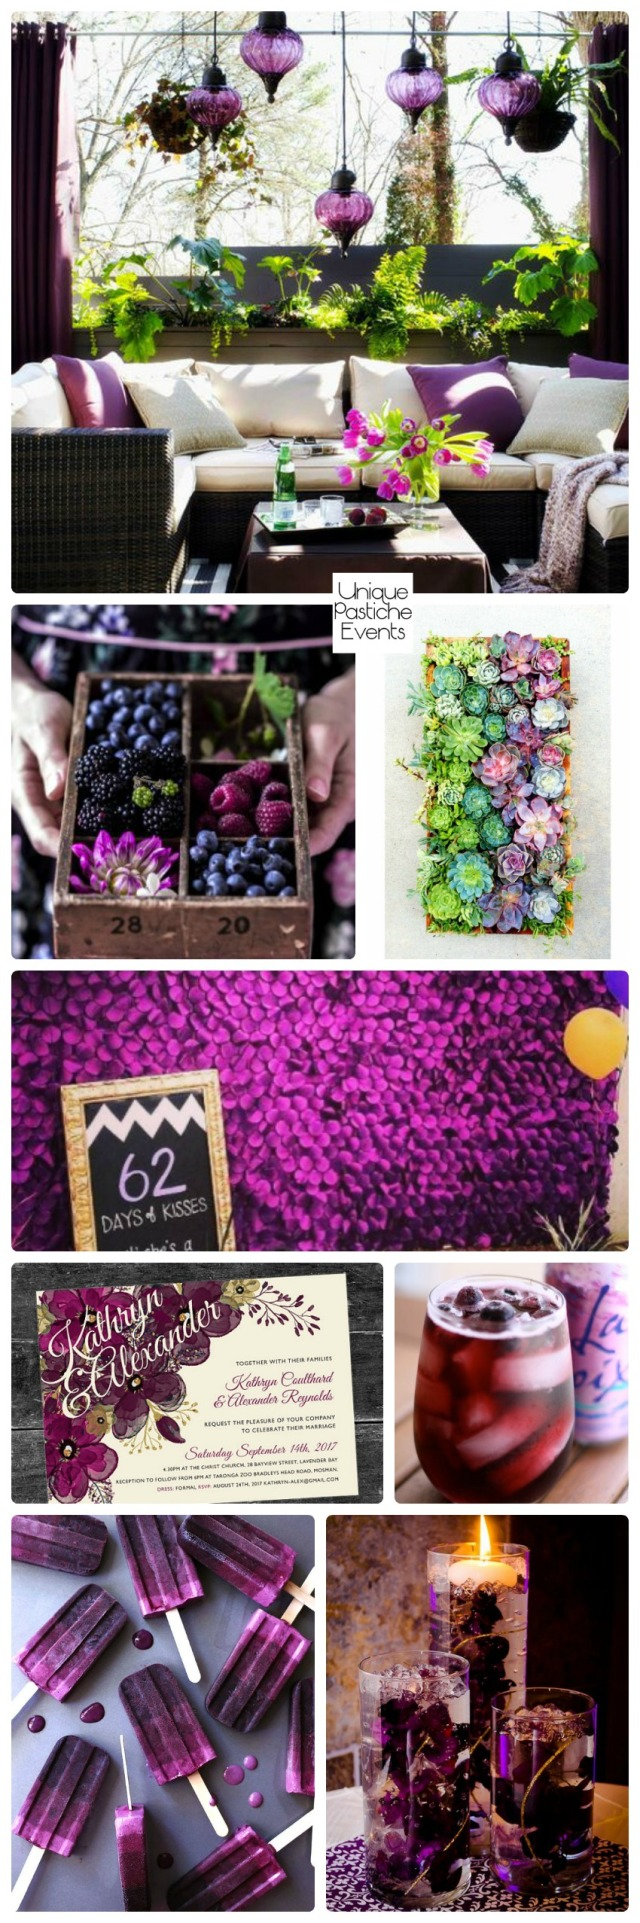 End of Summer Dinner Party Soiree in Berry Hues